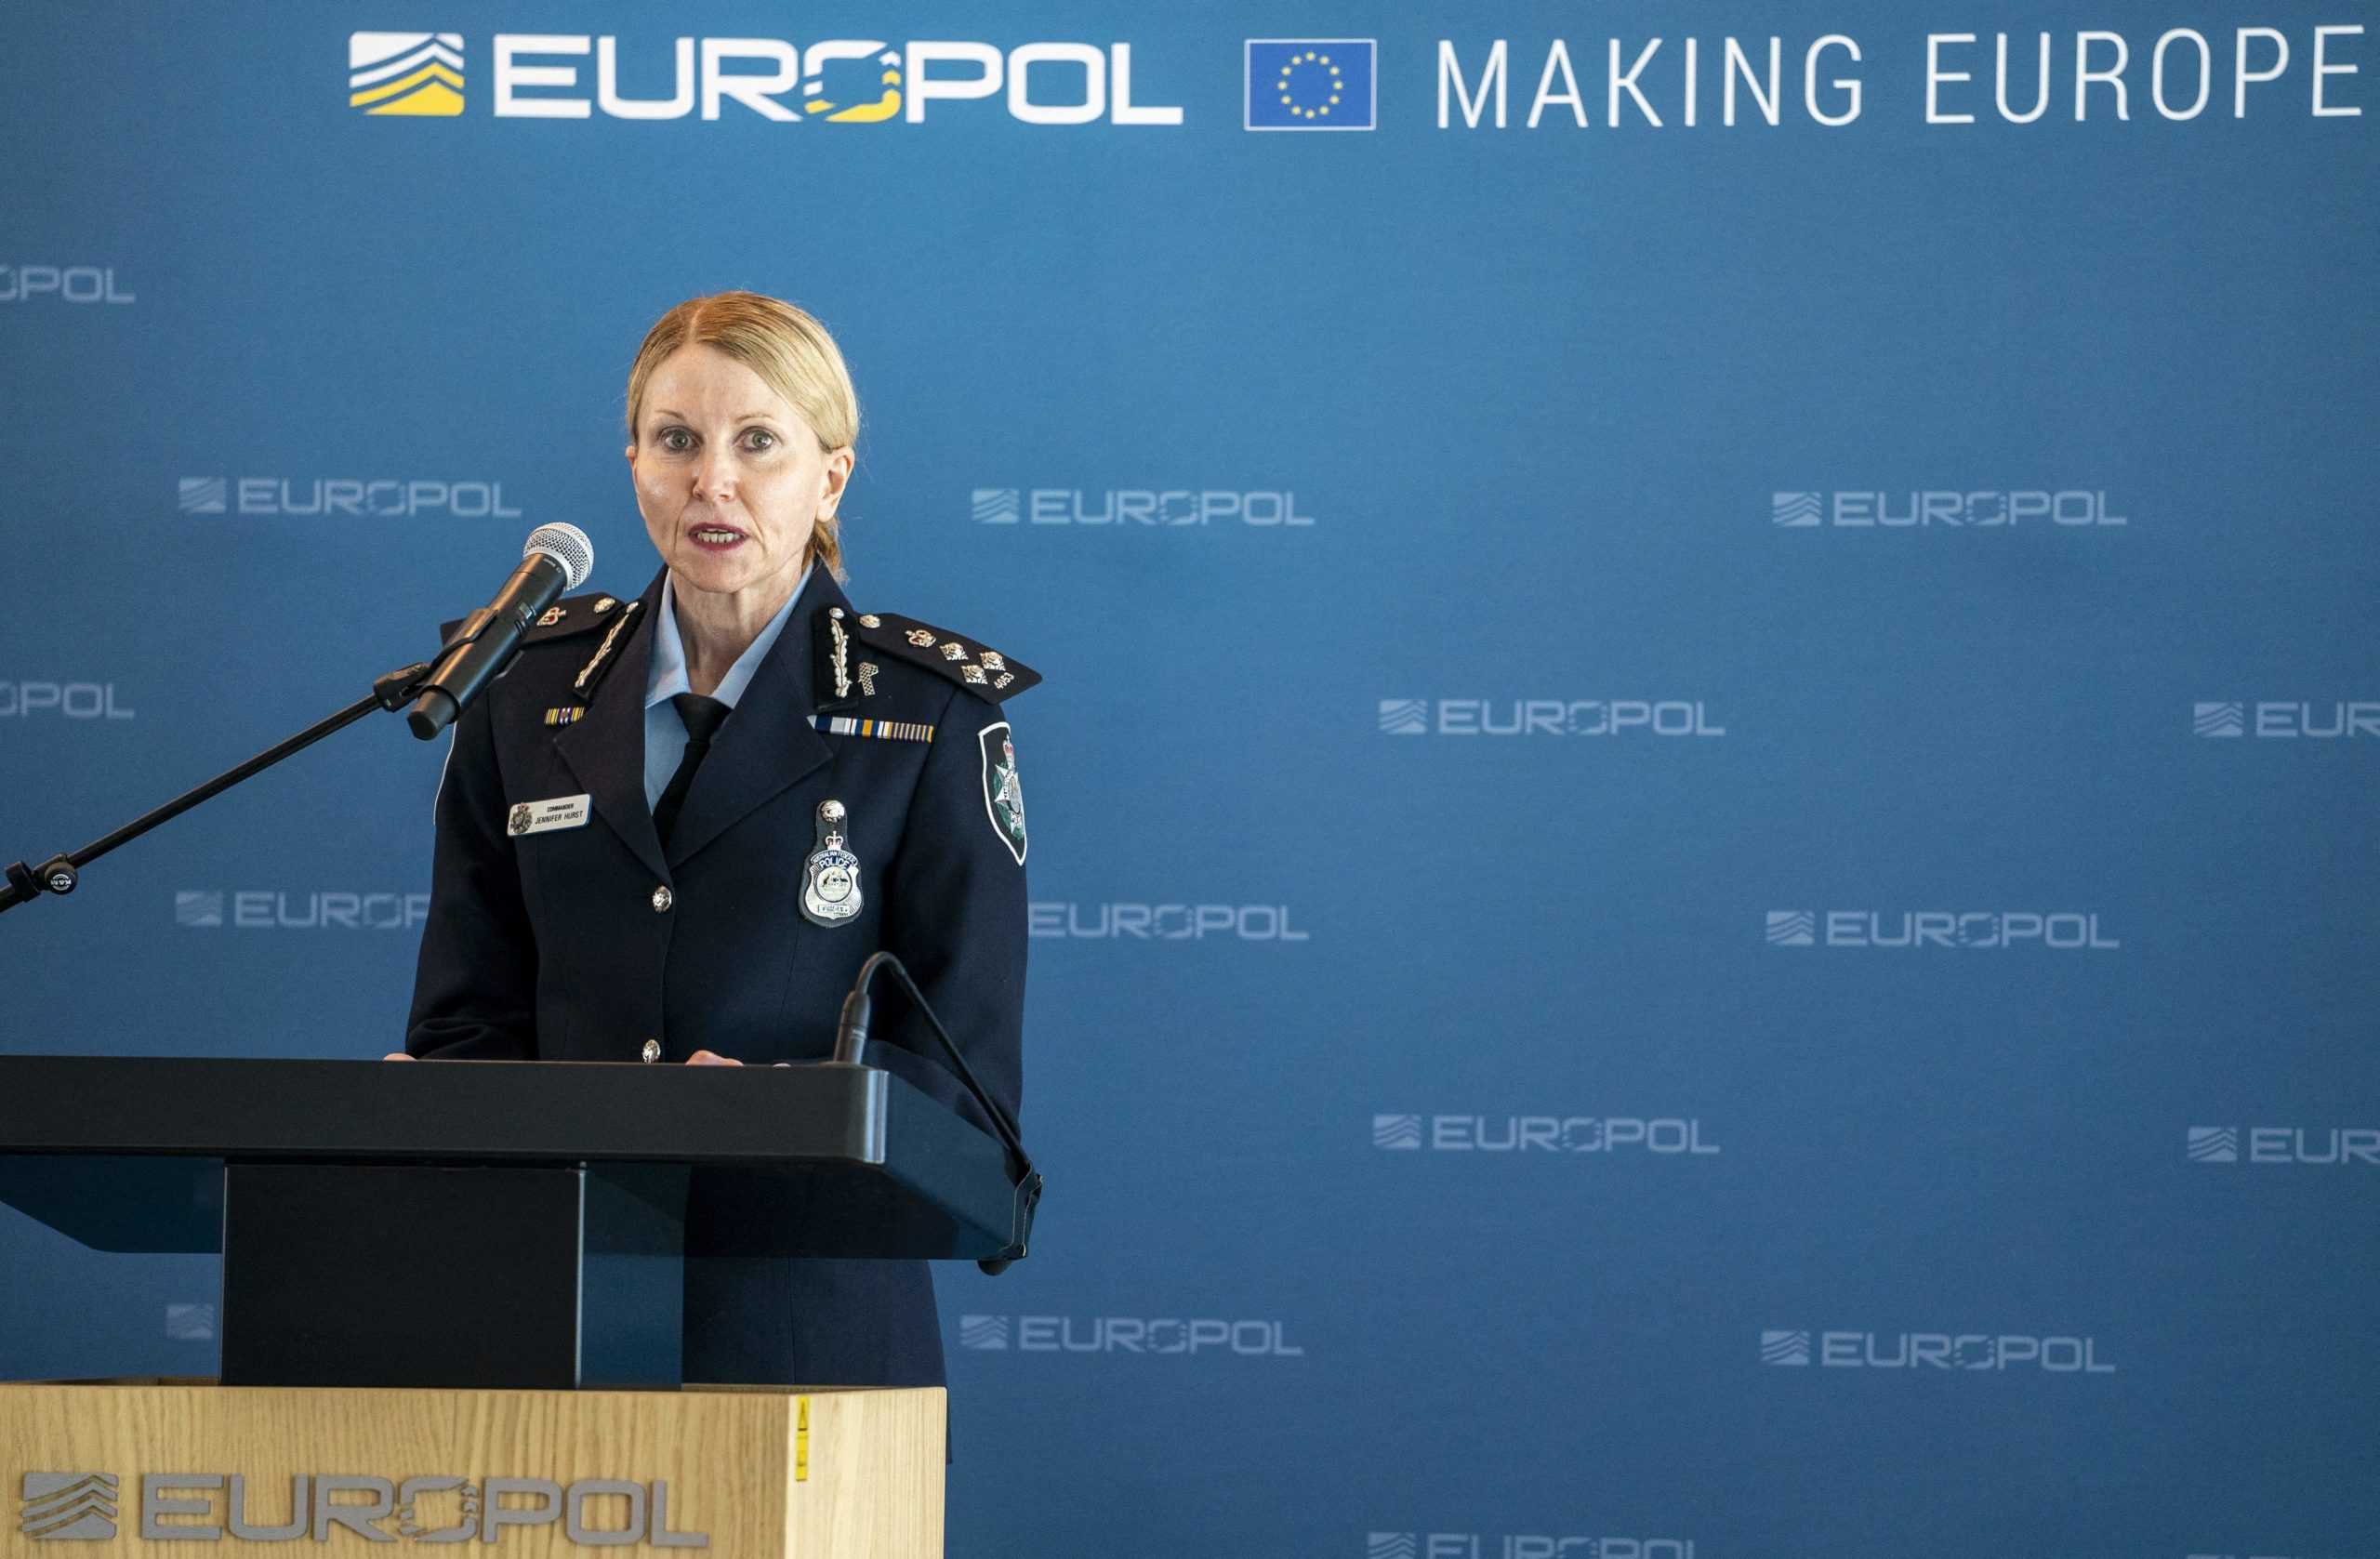 Australian Federal Police Commander Jennifer Hurst speaks during a press conference on Tuesday at Europol. (Jerry Lampen/ANP/AFP via Getty Images)